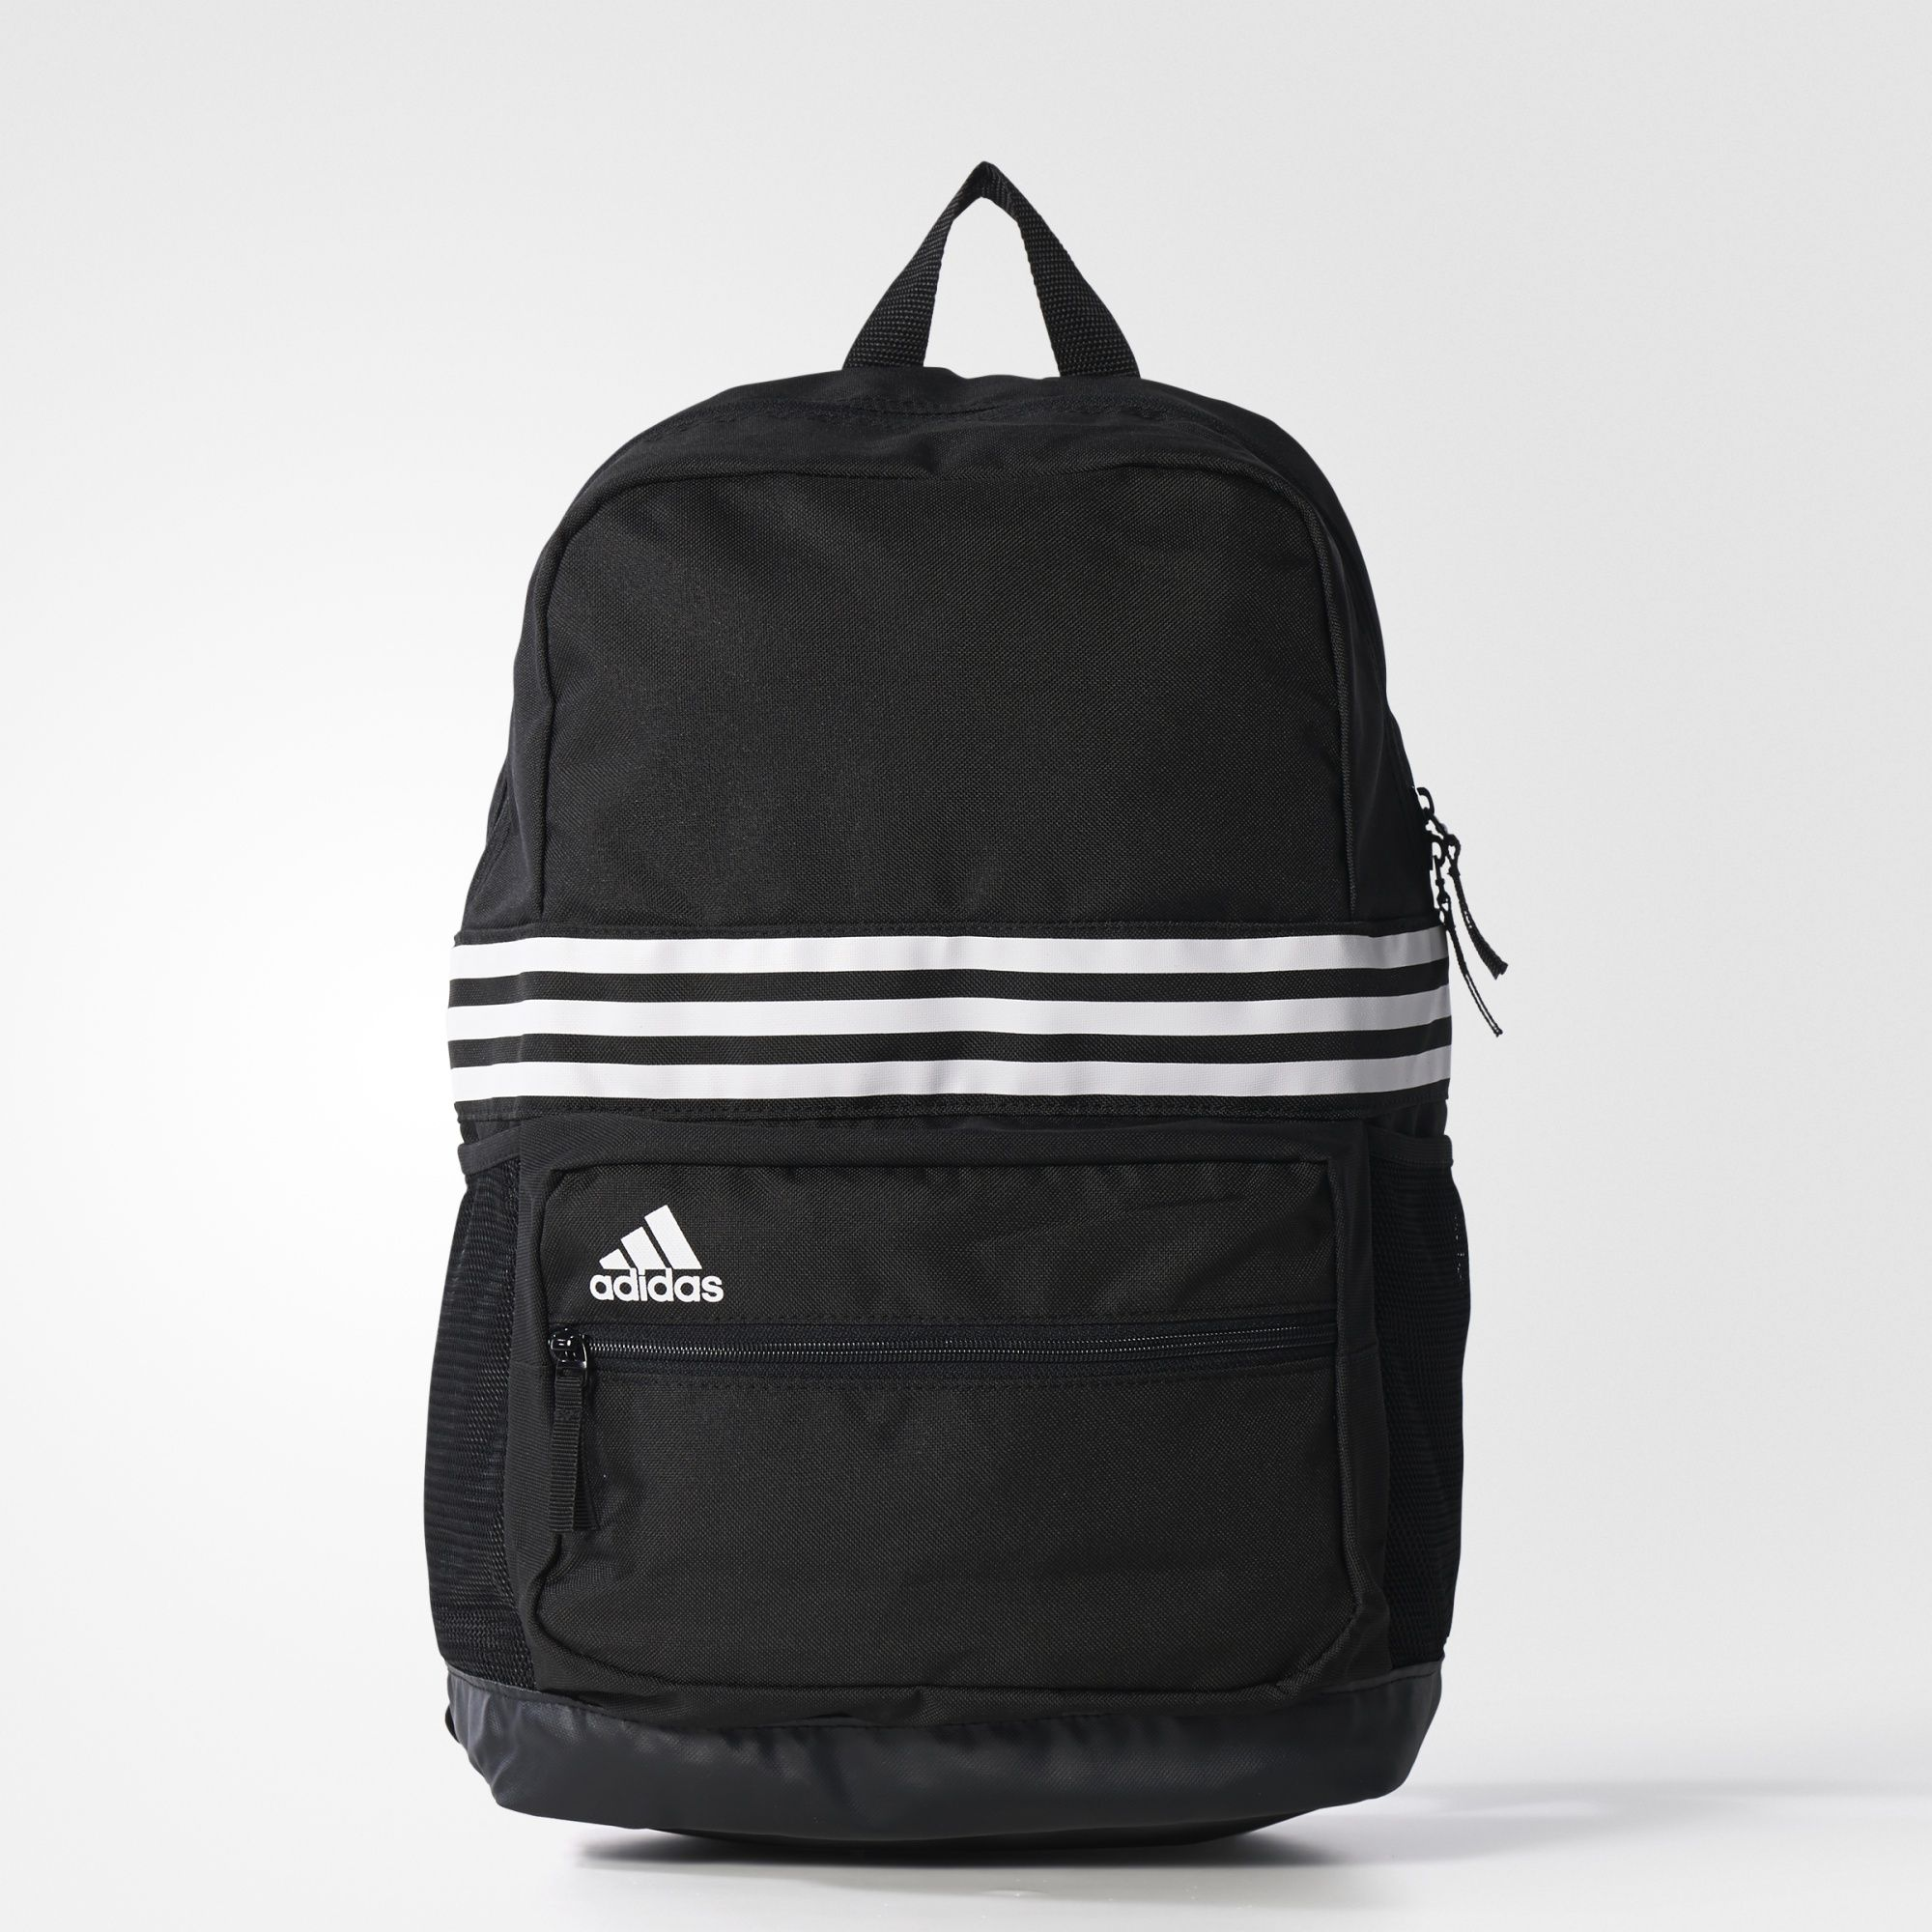 80cba6274e adidas 3-Stripes Sports Backpack Medium - Black